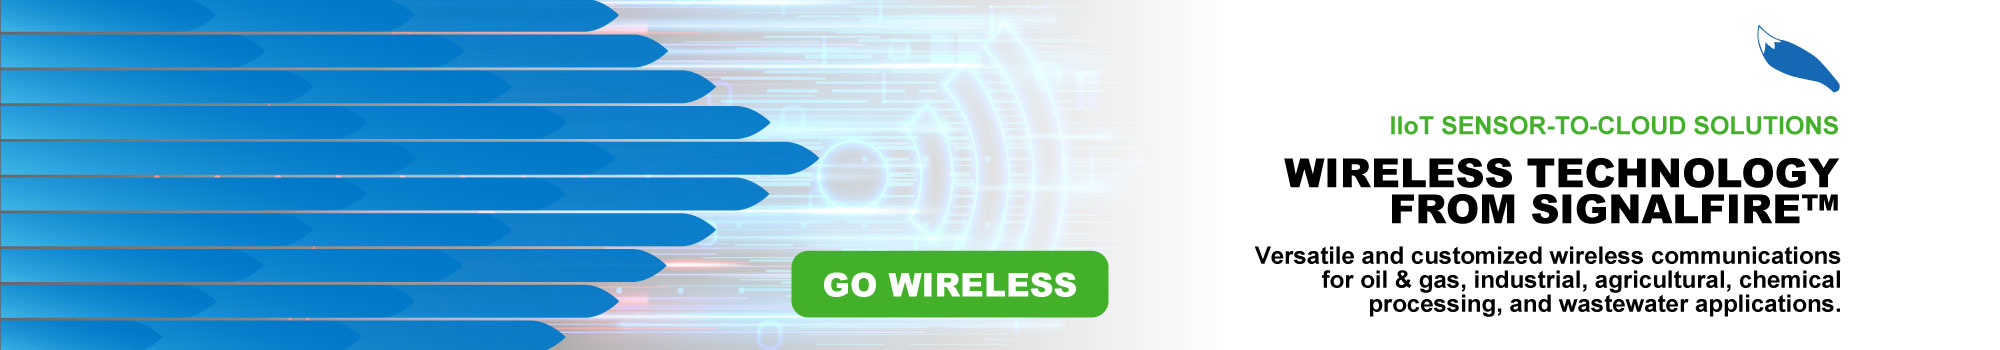 Check out the wireless solutions for IIoT from SignalFire Wireless Telemetry